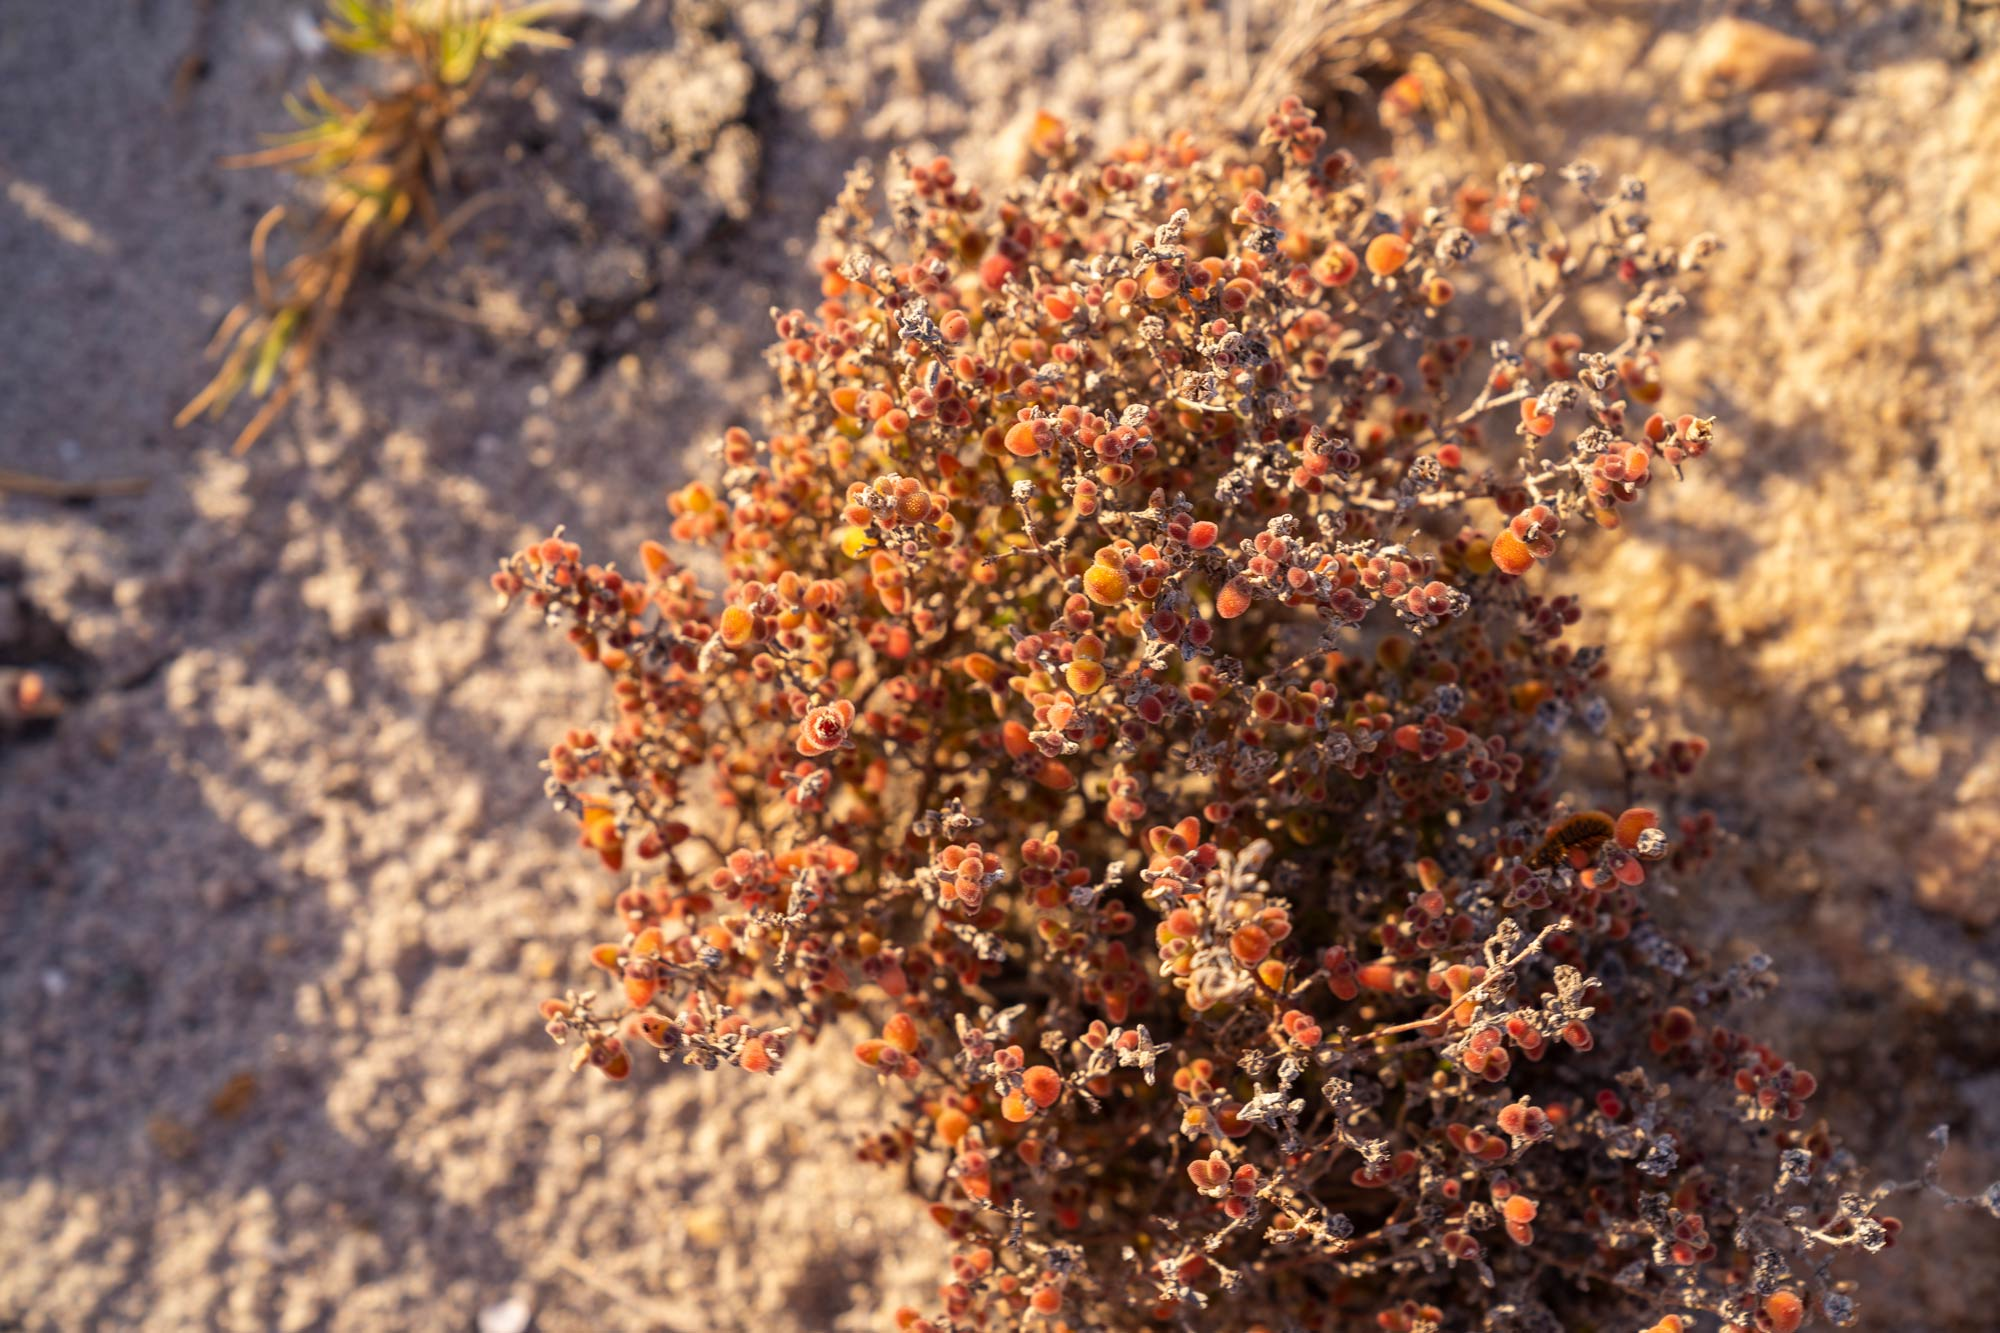 Weird and wonderful plants of the Namaqua National Park Image Copyright Soonafternoon